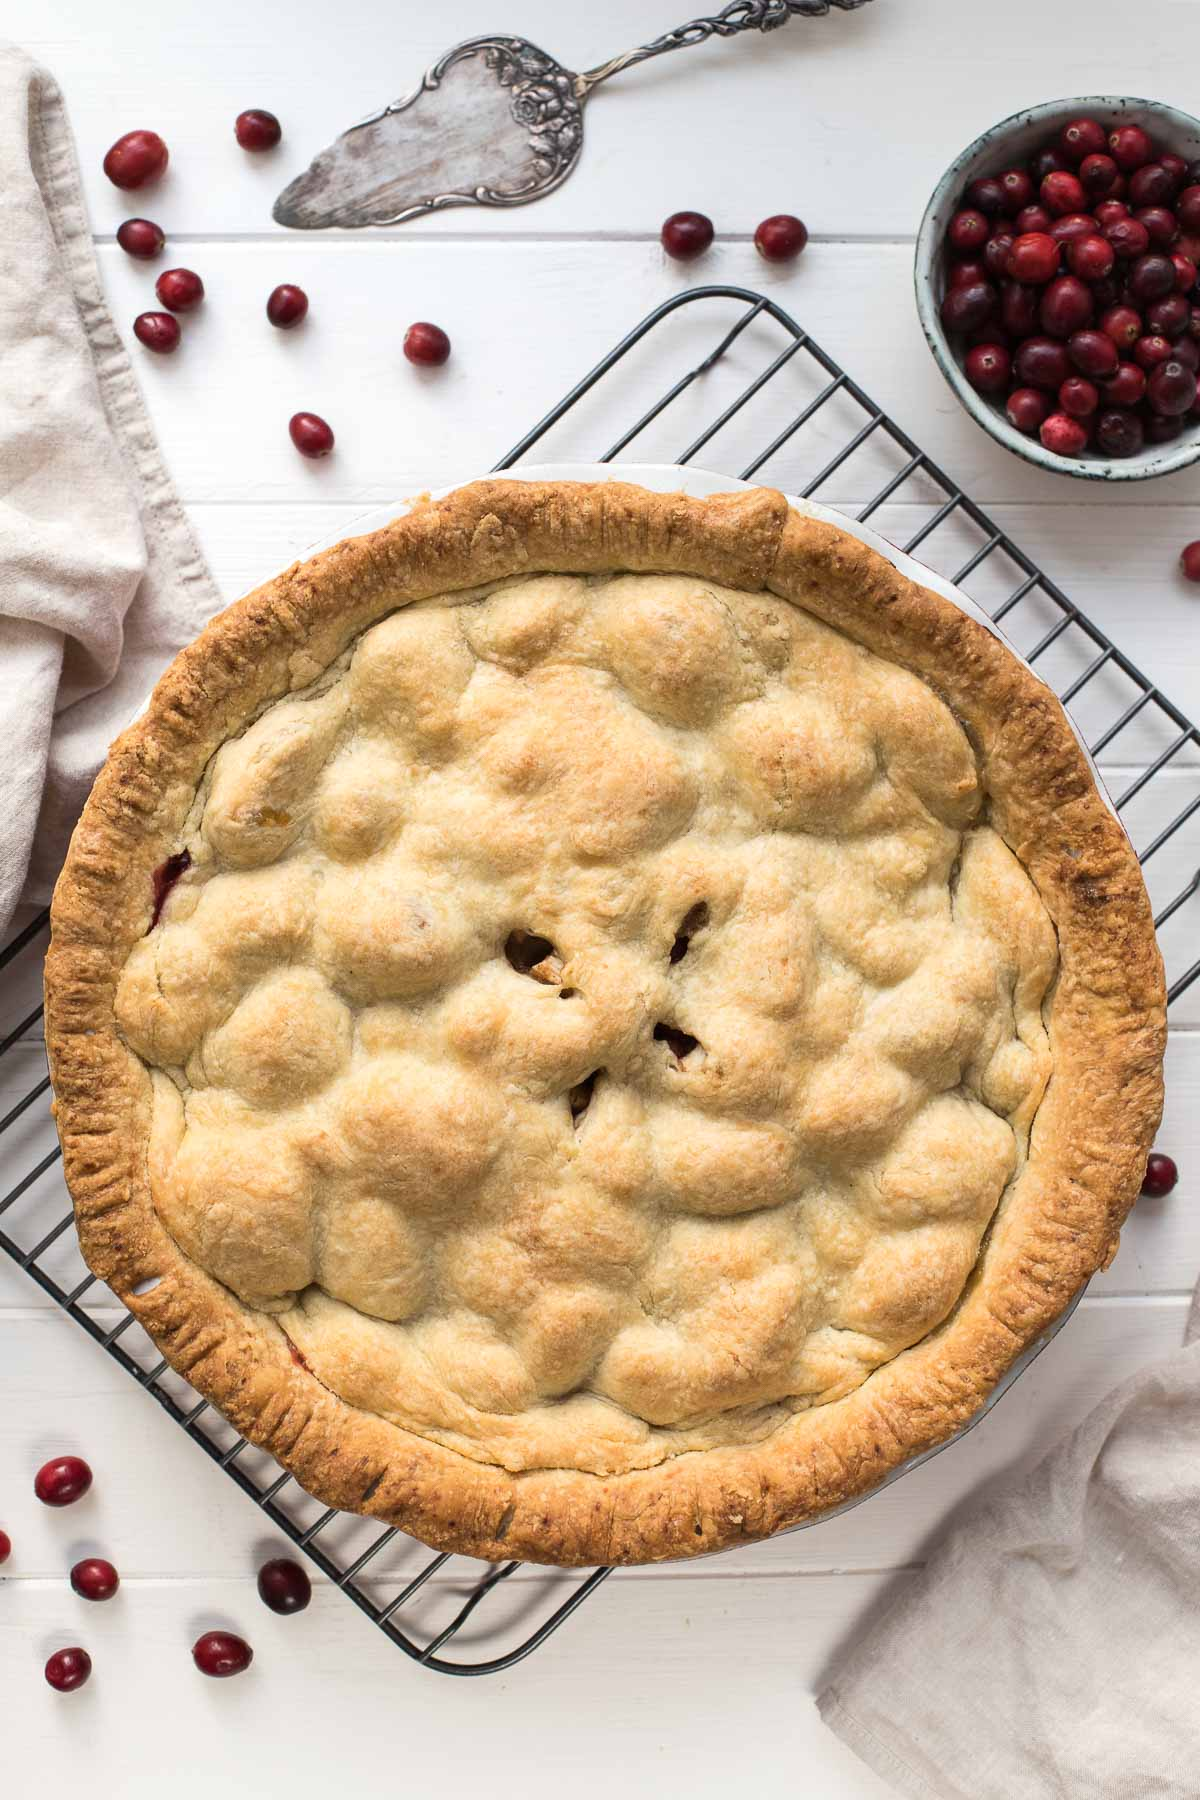 Classic Apple Pie with Cranberries recipe